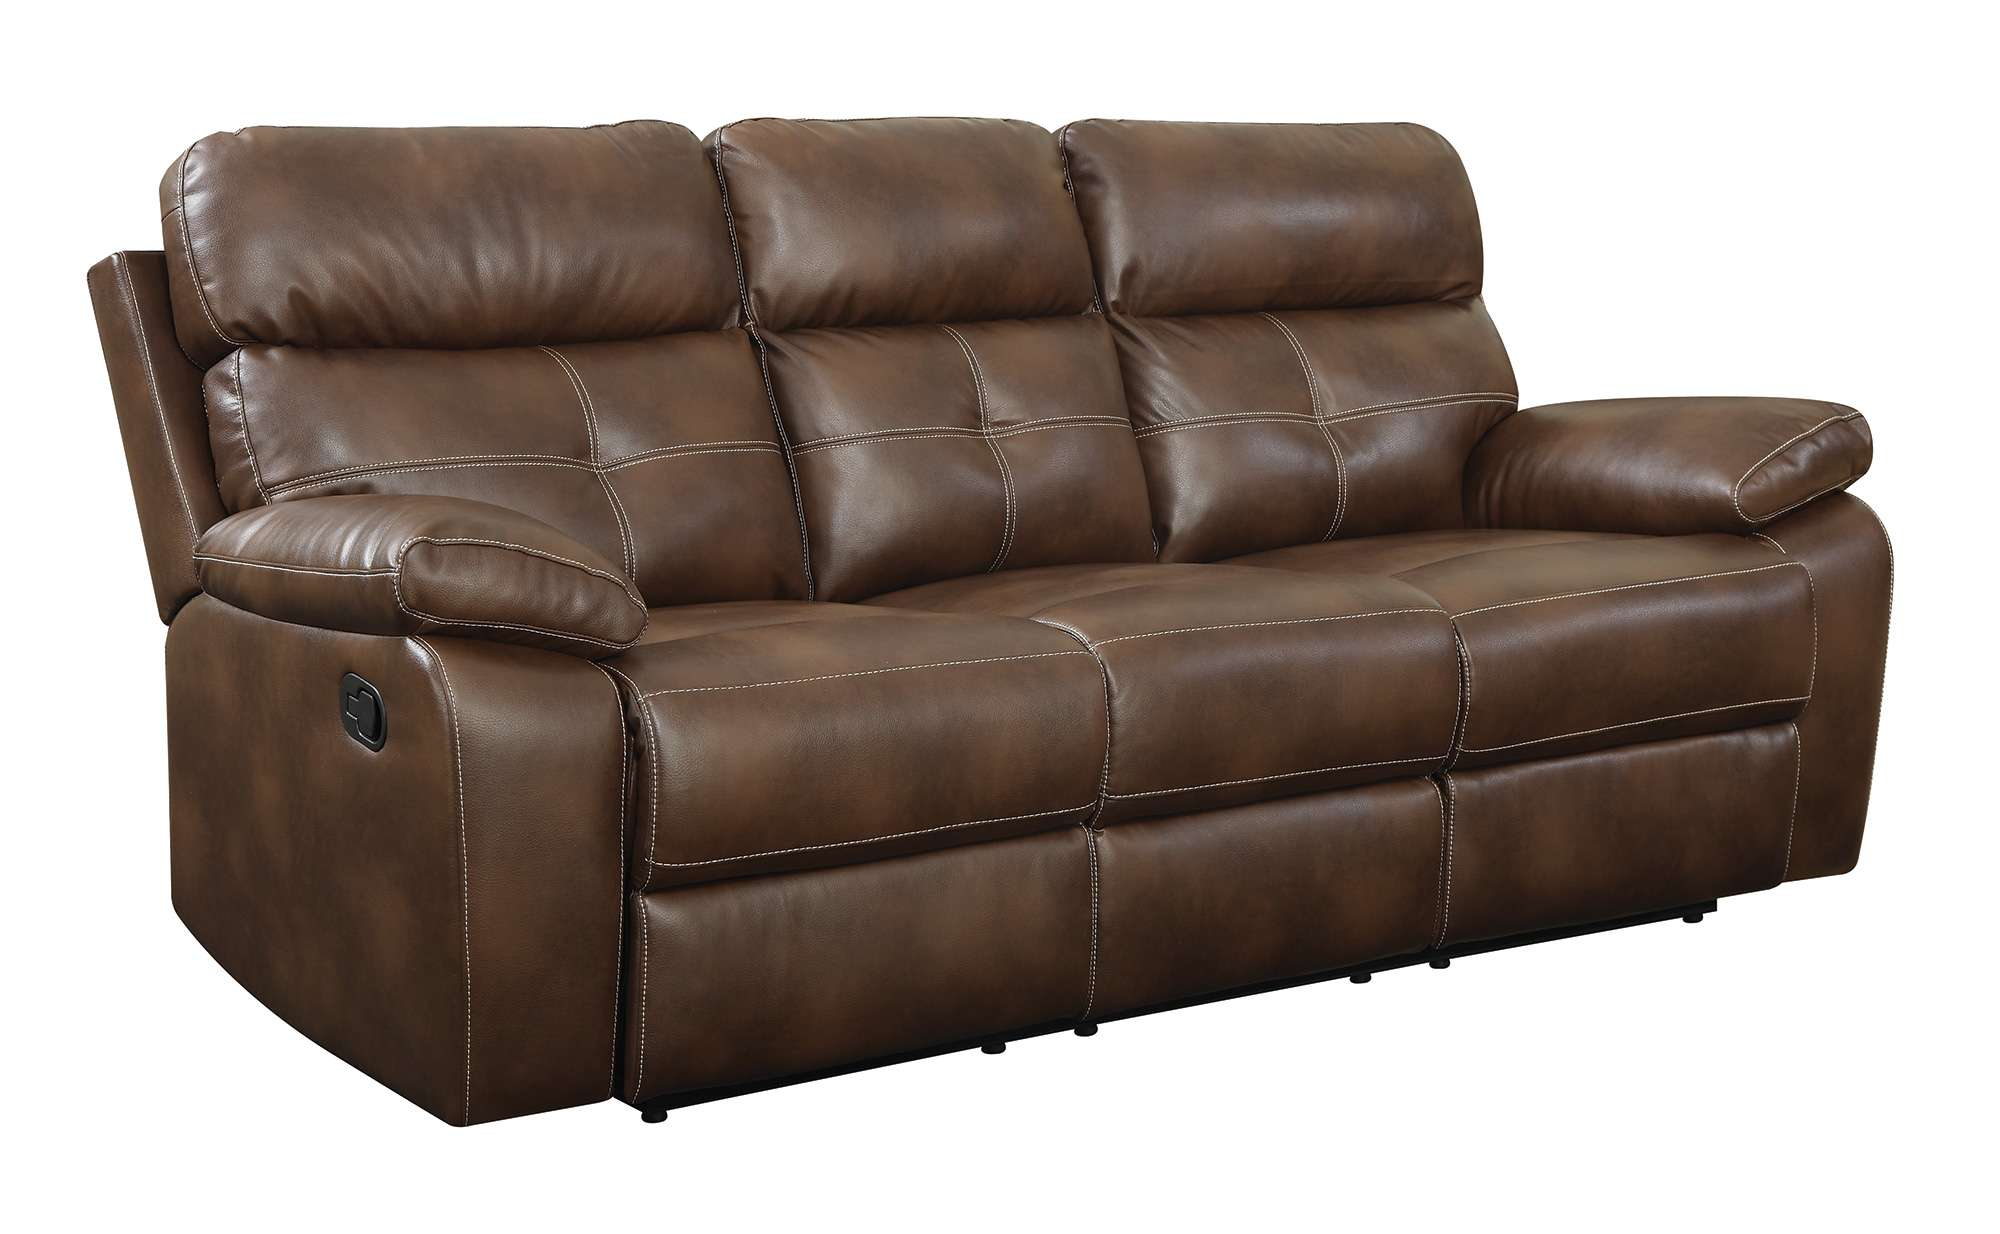 Coaster Damiano Brown Casual Faux Leather Button Tufted Reclining ...